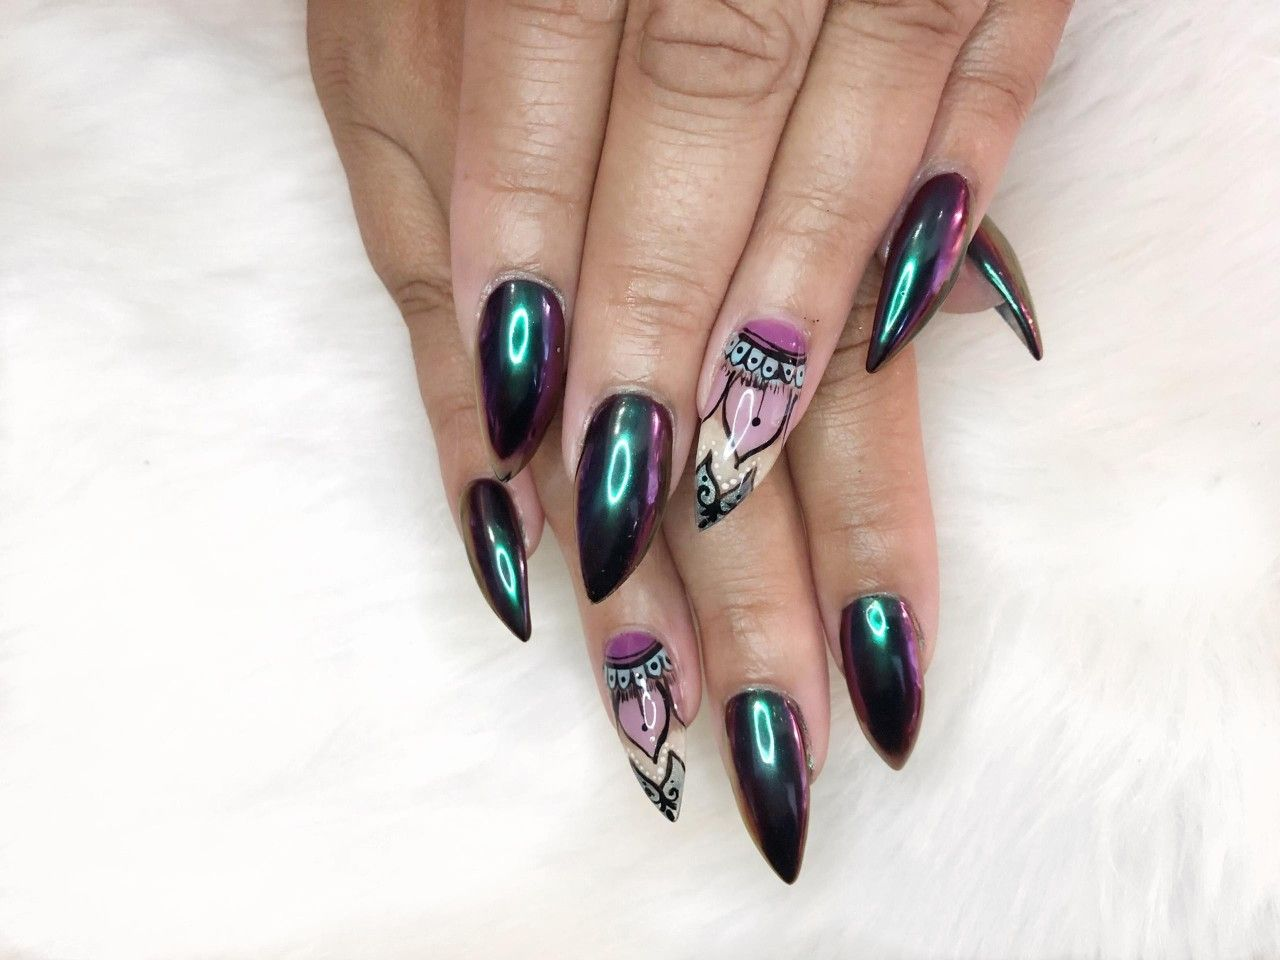 Get nailed Beauty lounge Portland,Maine Nails, Get nails